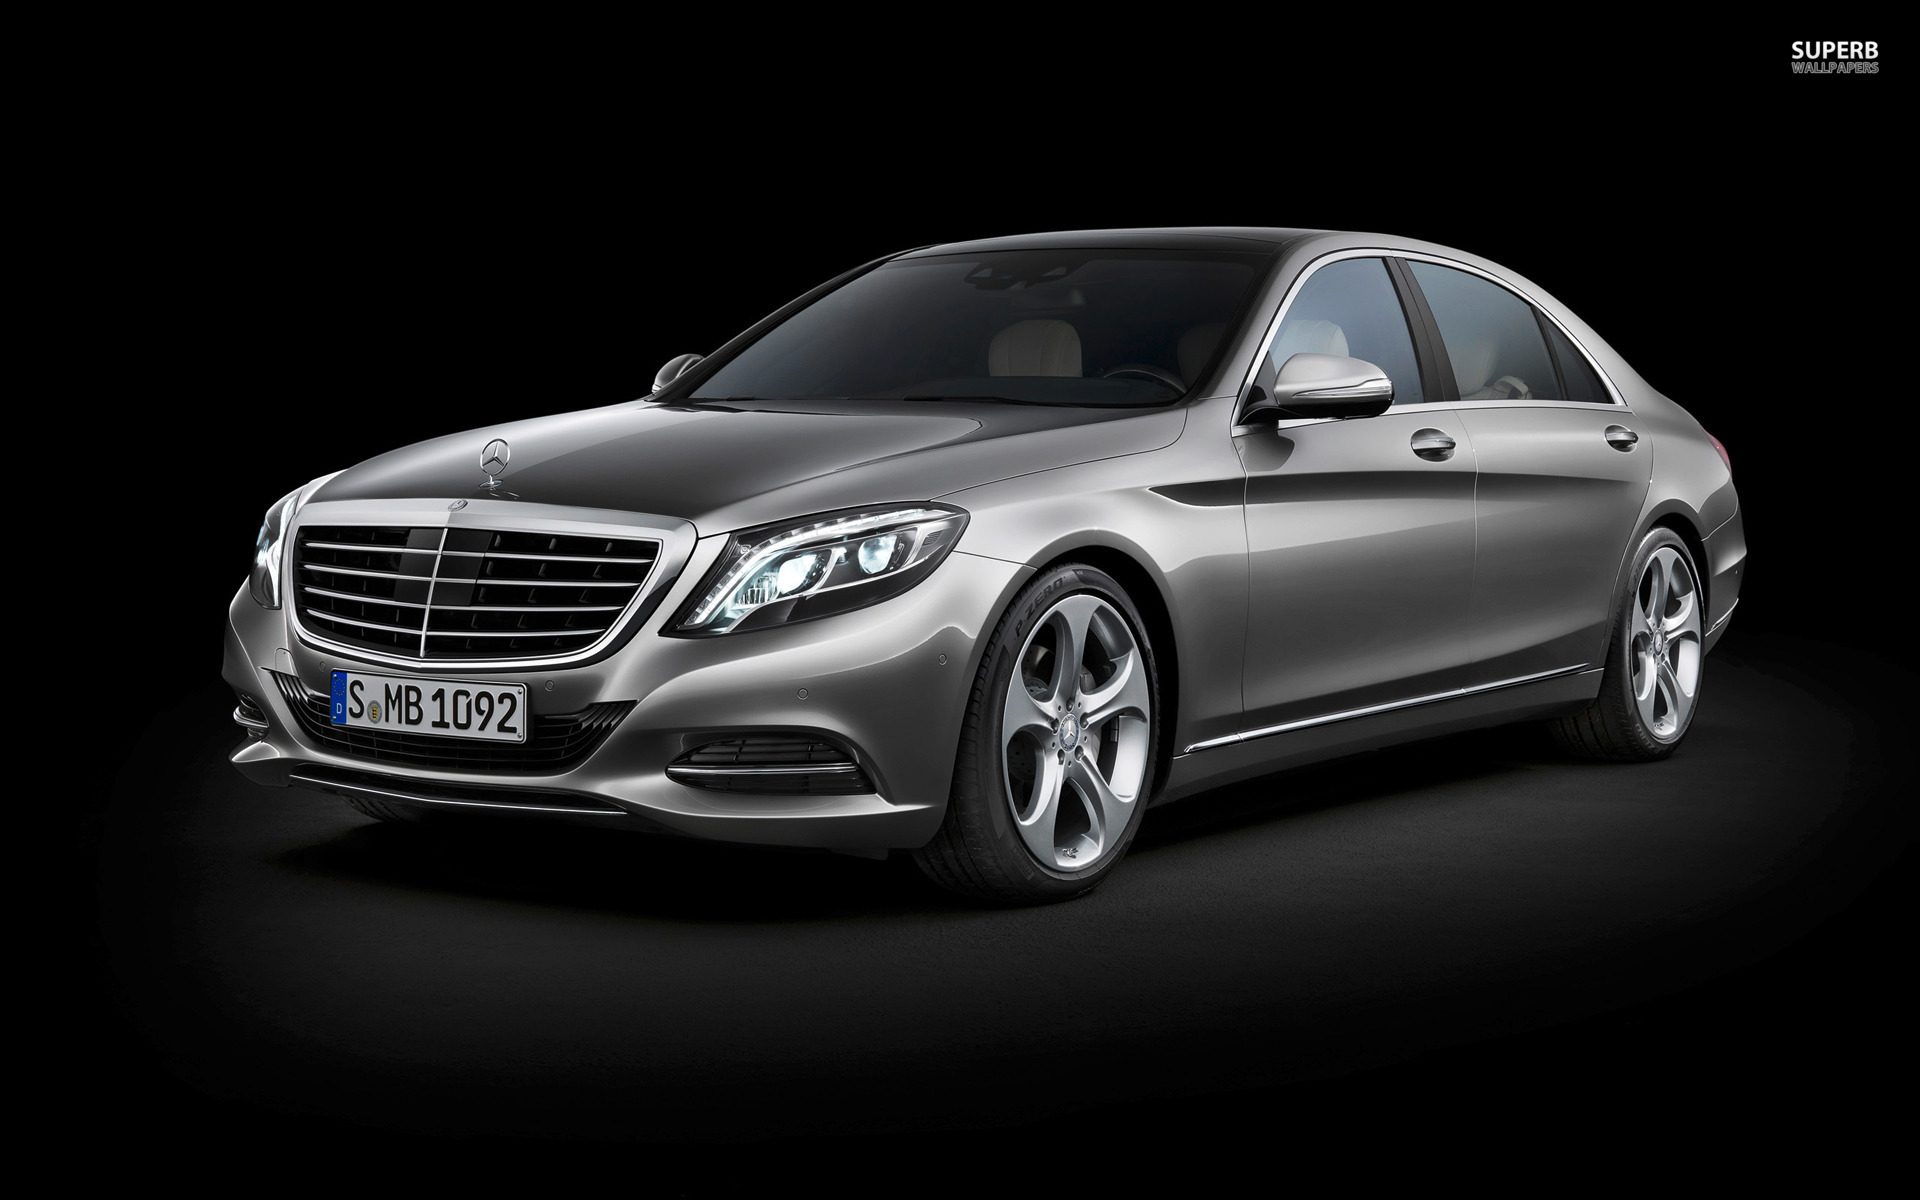 2013 mercedes benz s class image 10 for Mercedes benz 2013 s550